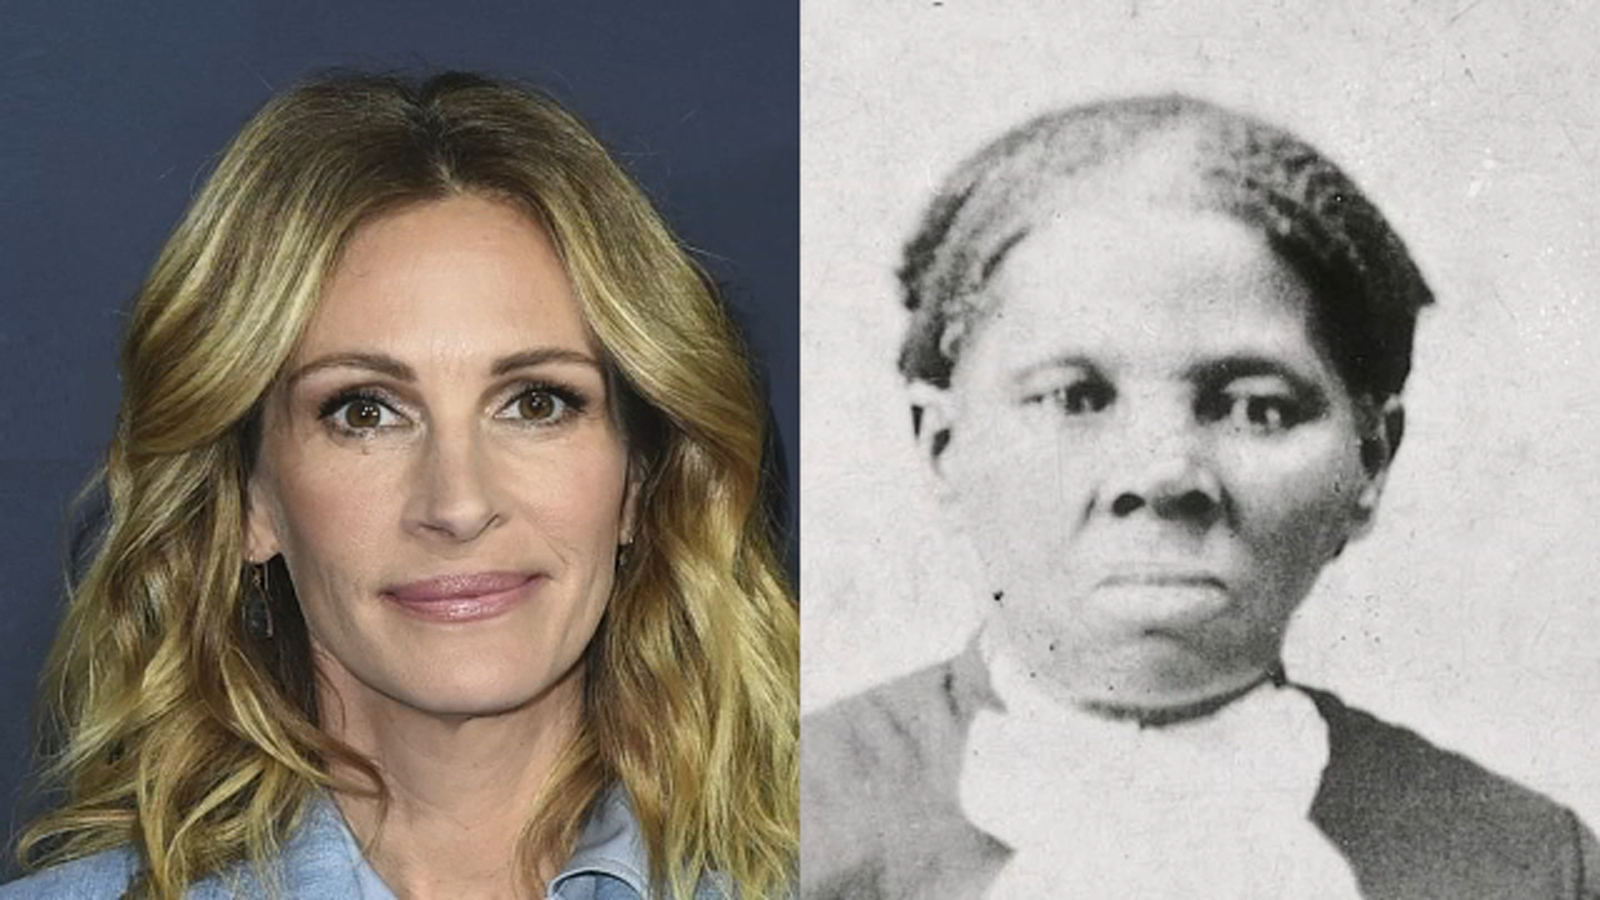 Studio executive suggested Julia Roberts play Harriet Tubman in film about anti-slavery crusader